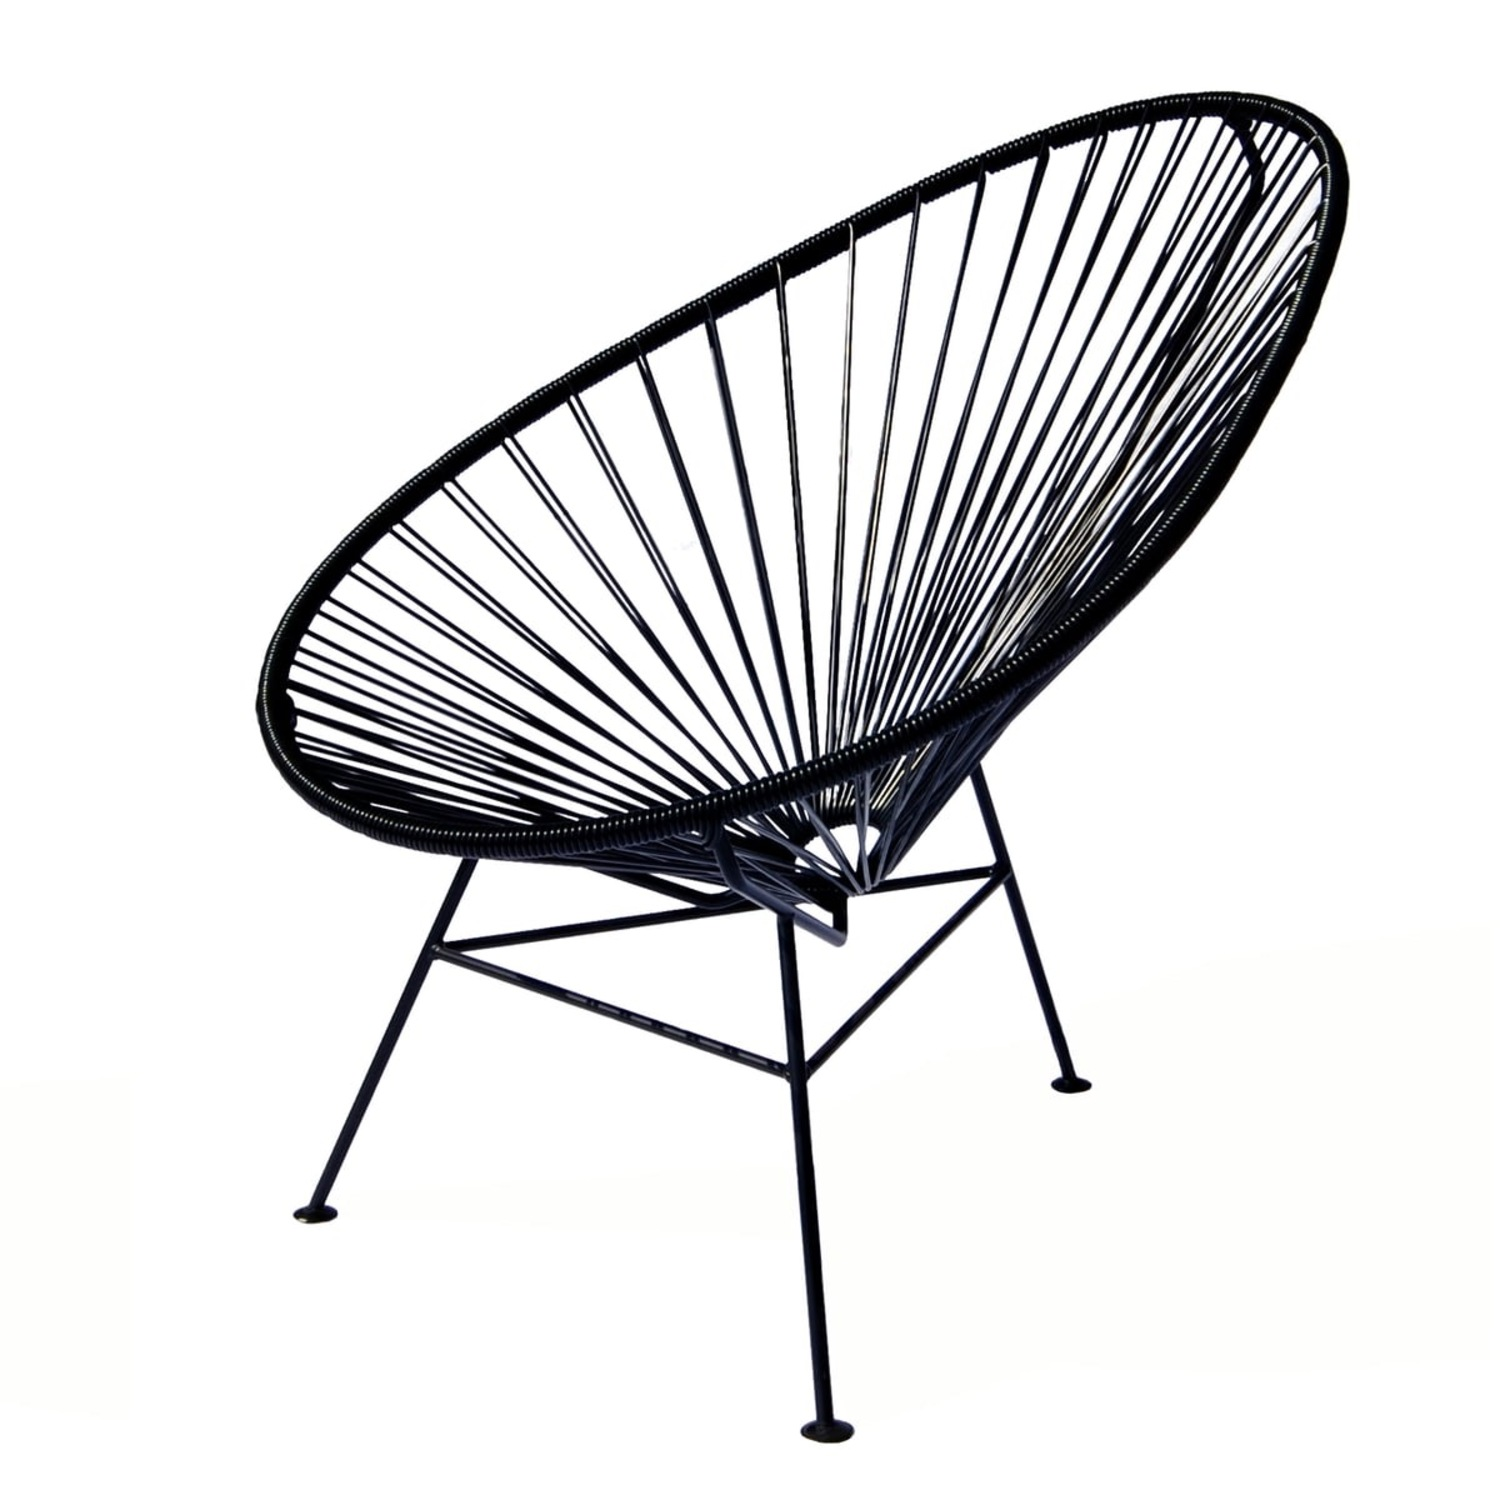 Crate & Barrel Black Spindle Lounge Chair - image-3